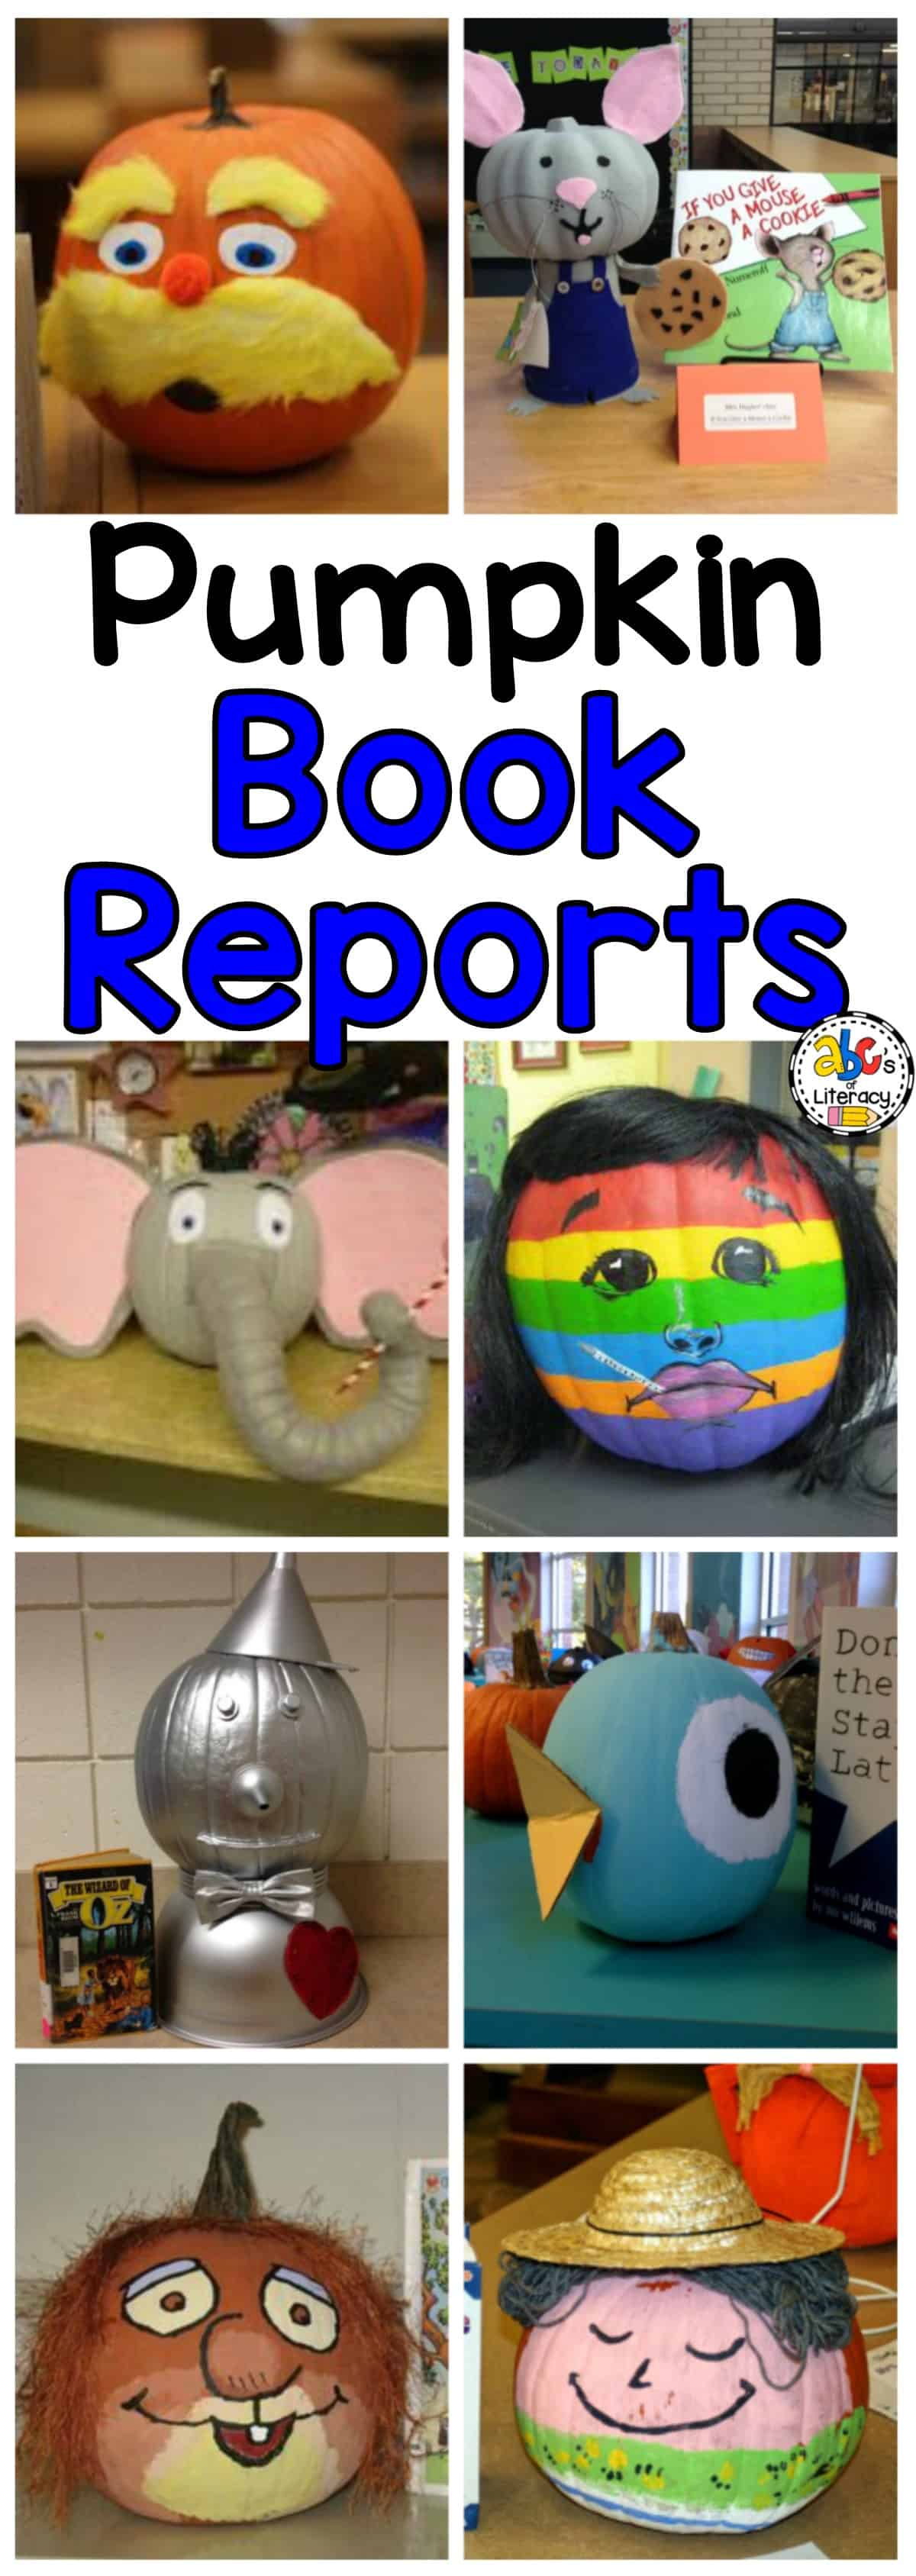 Pumpkin Book Report Ideas, Pumpkin Book Reports, Pumpkin Book Character Reports